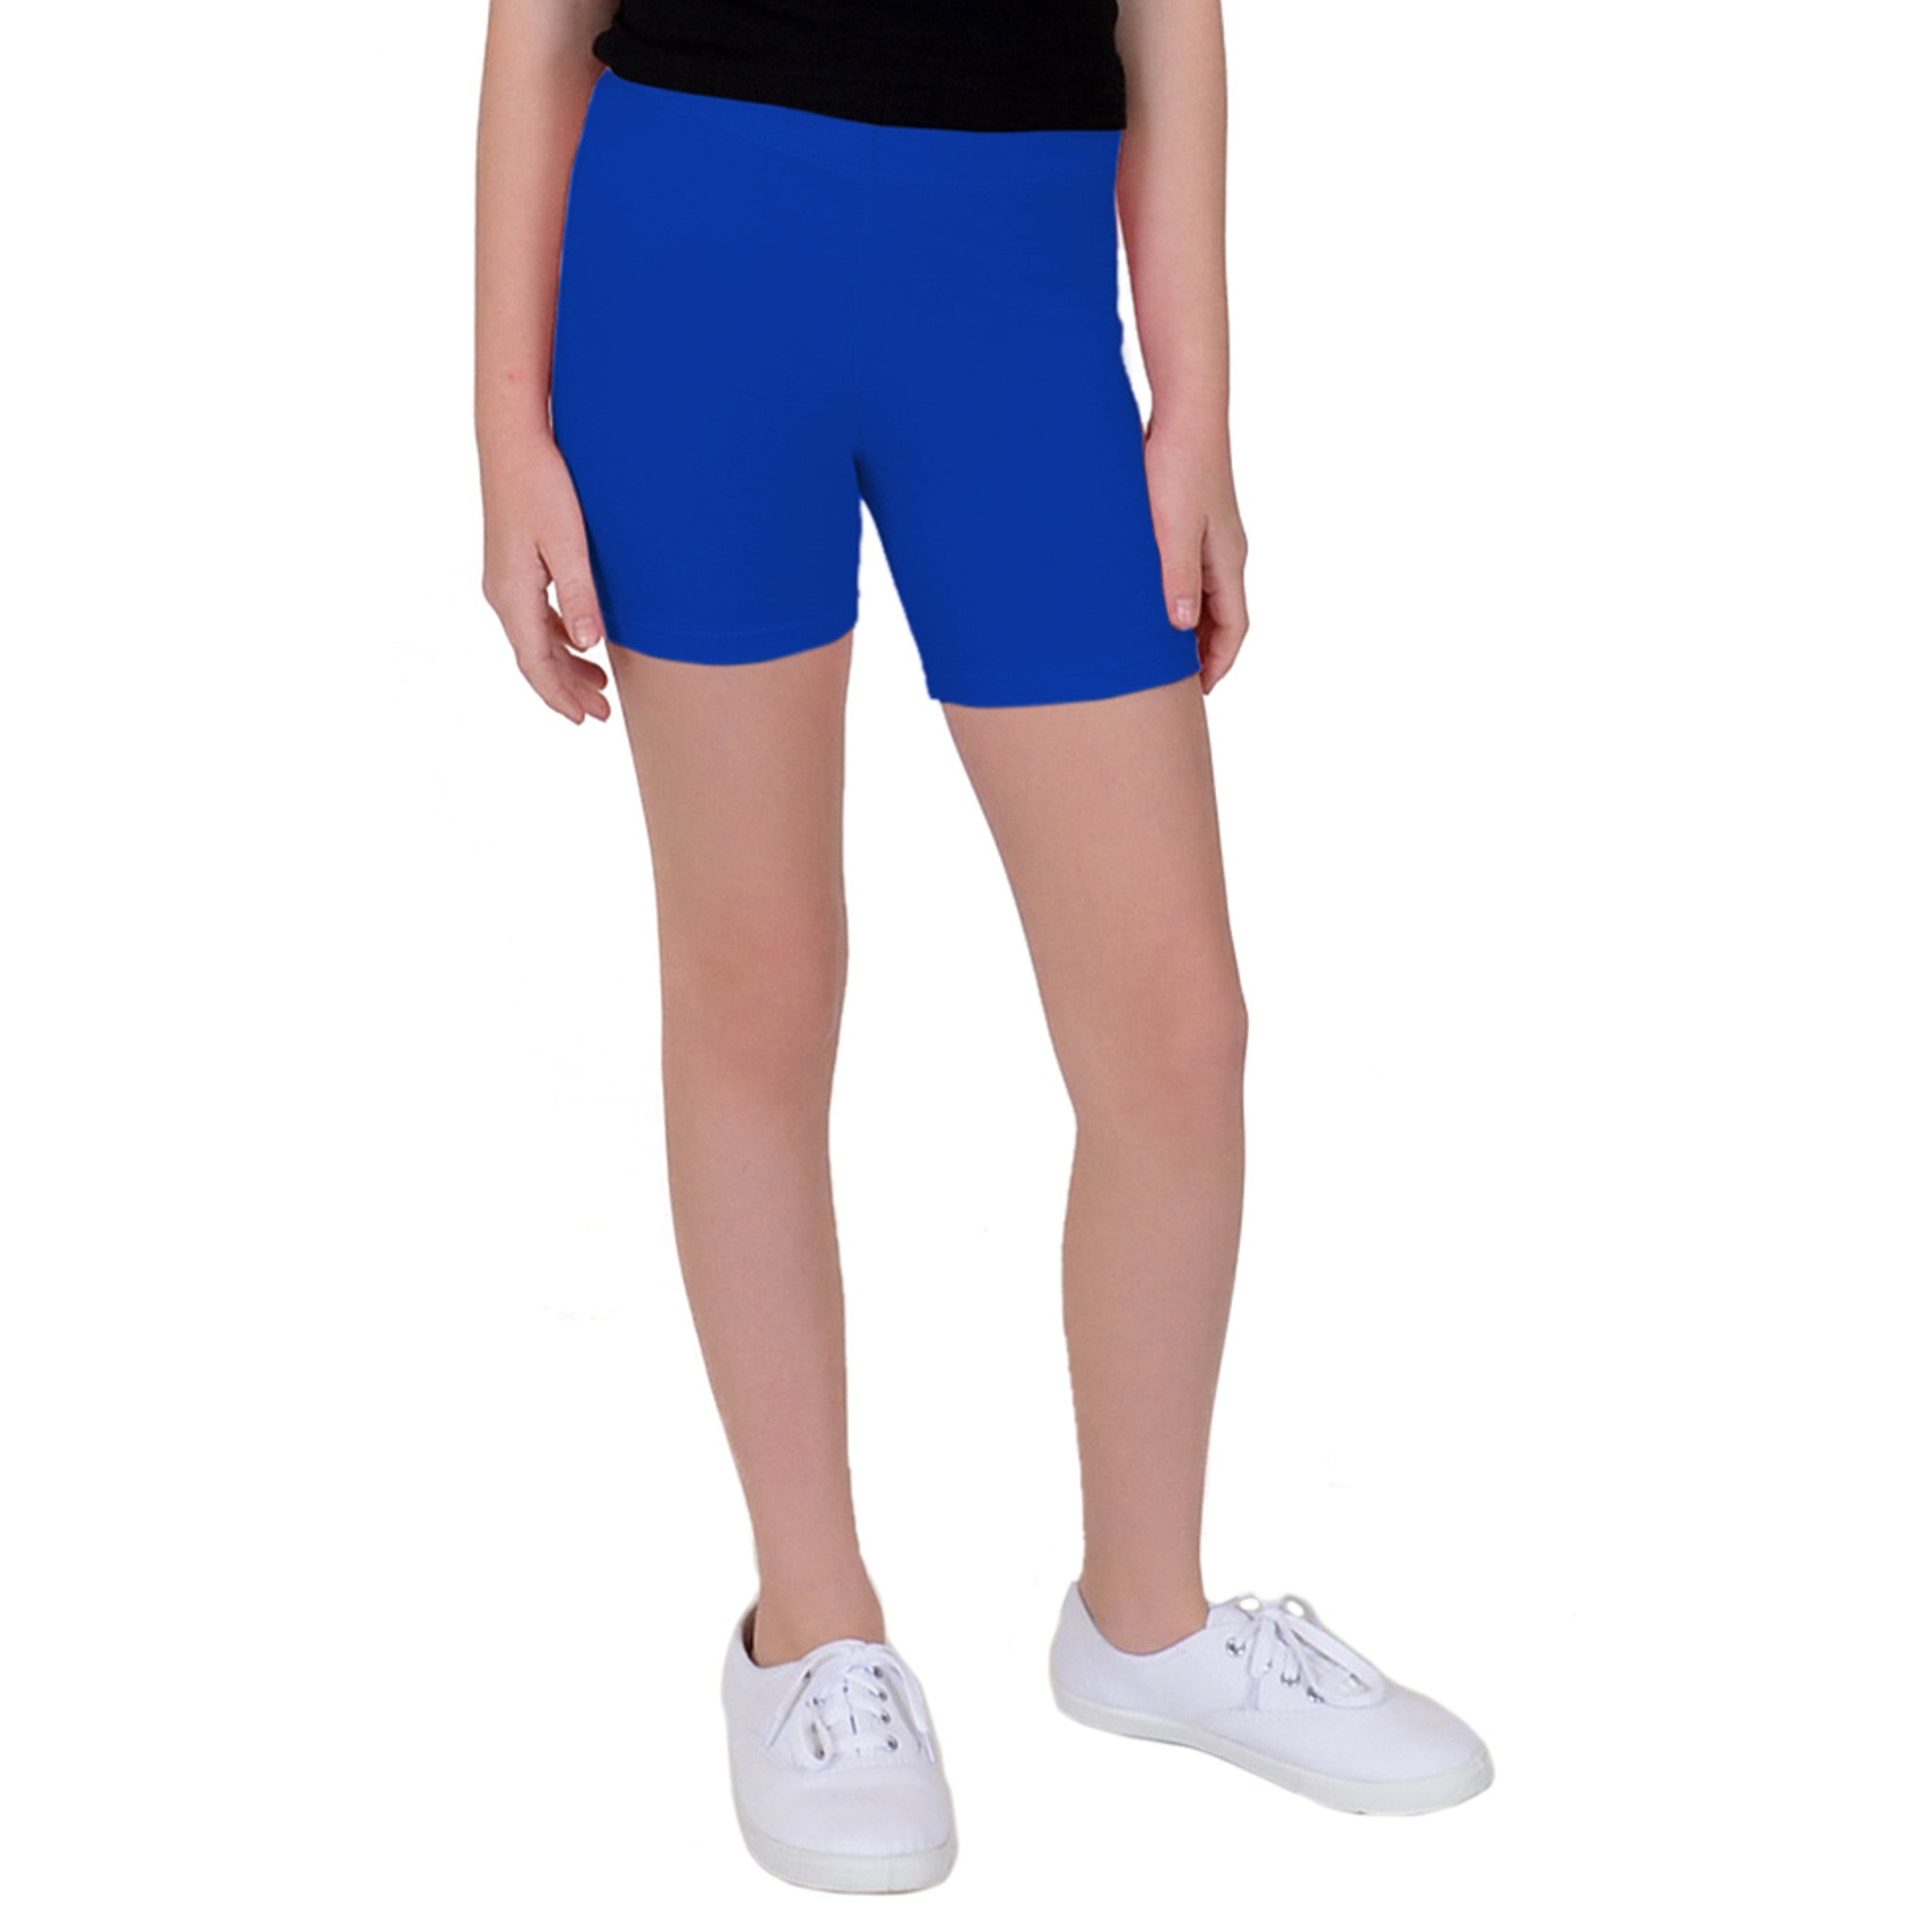 Teamwear Cotton Biker Shorts 1